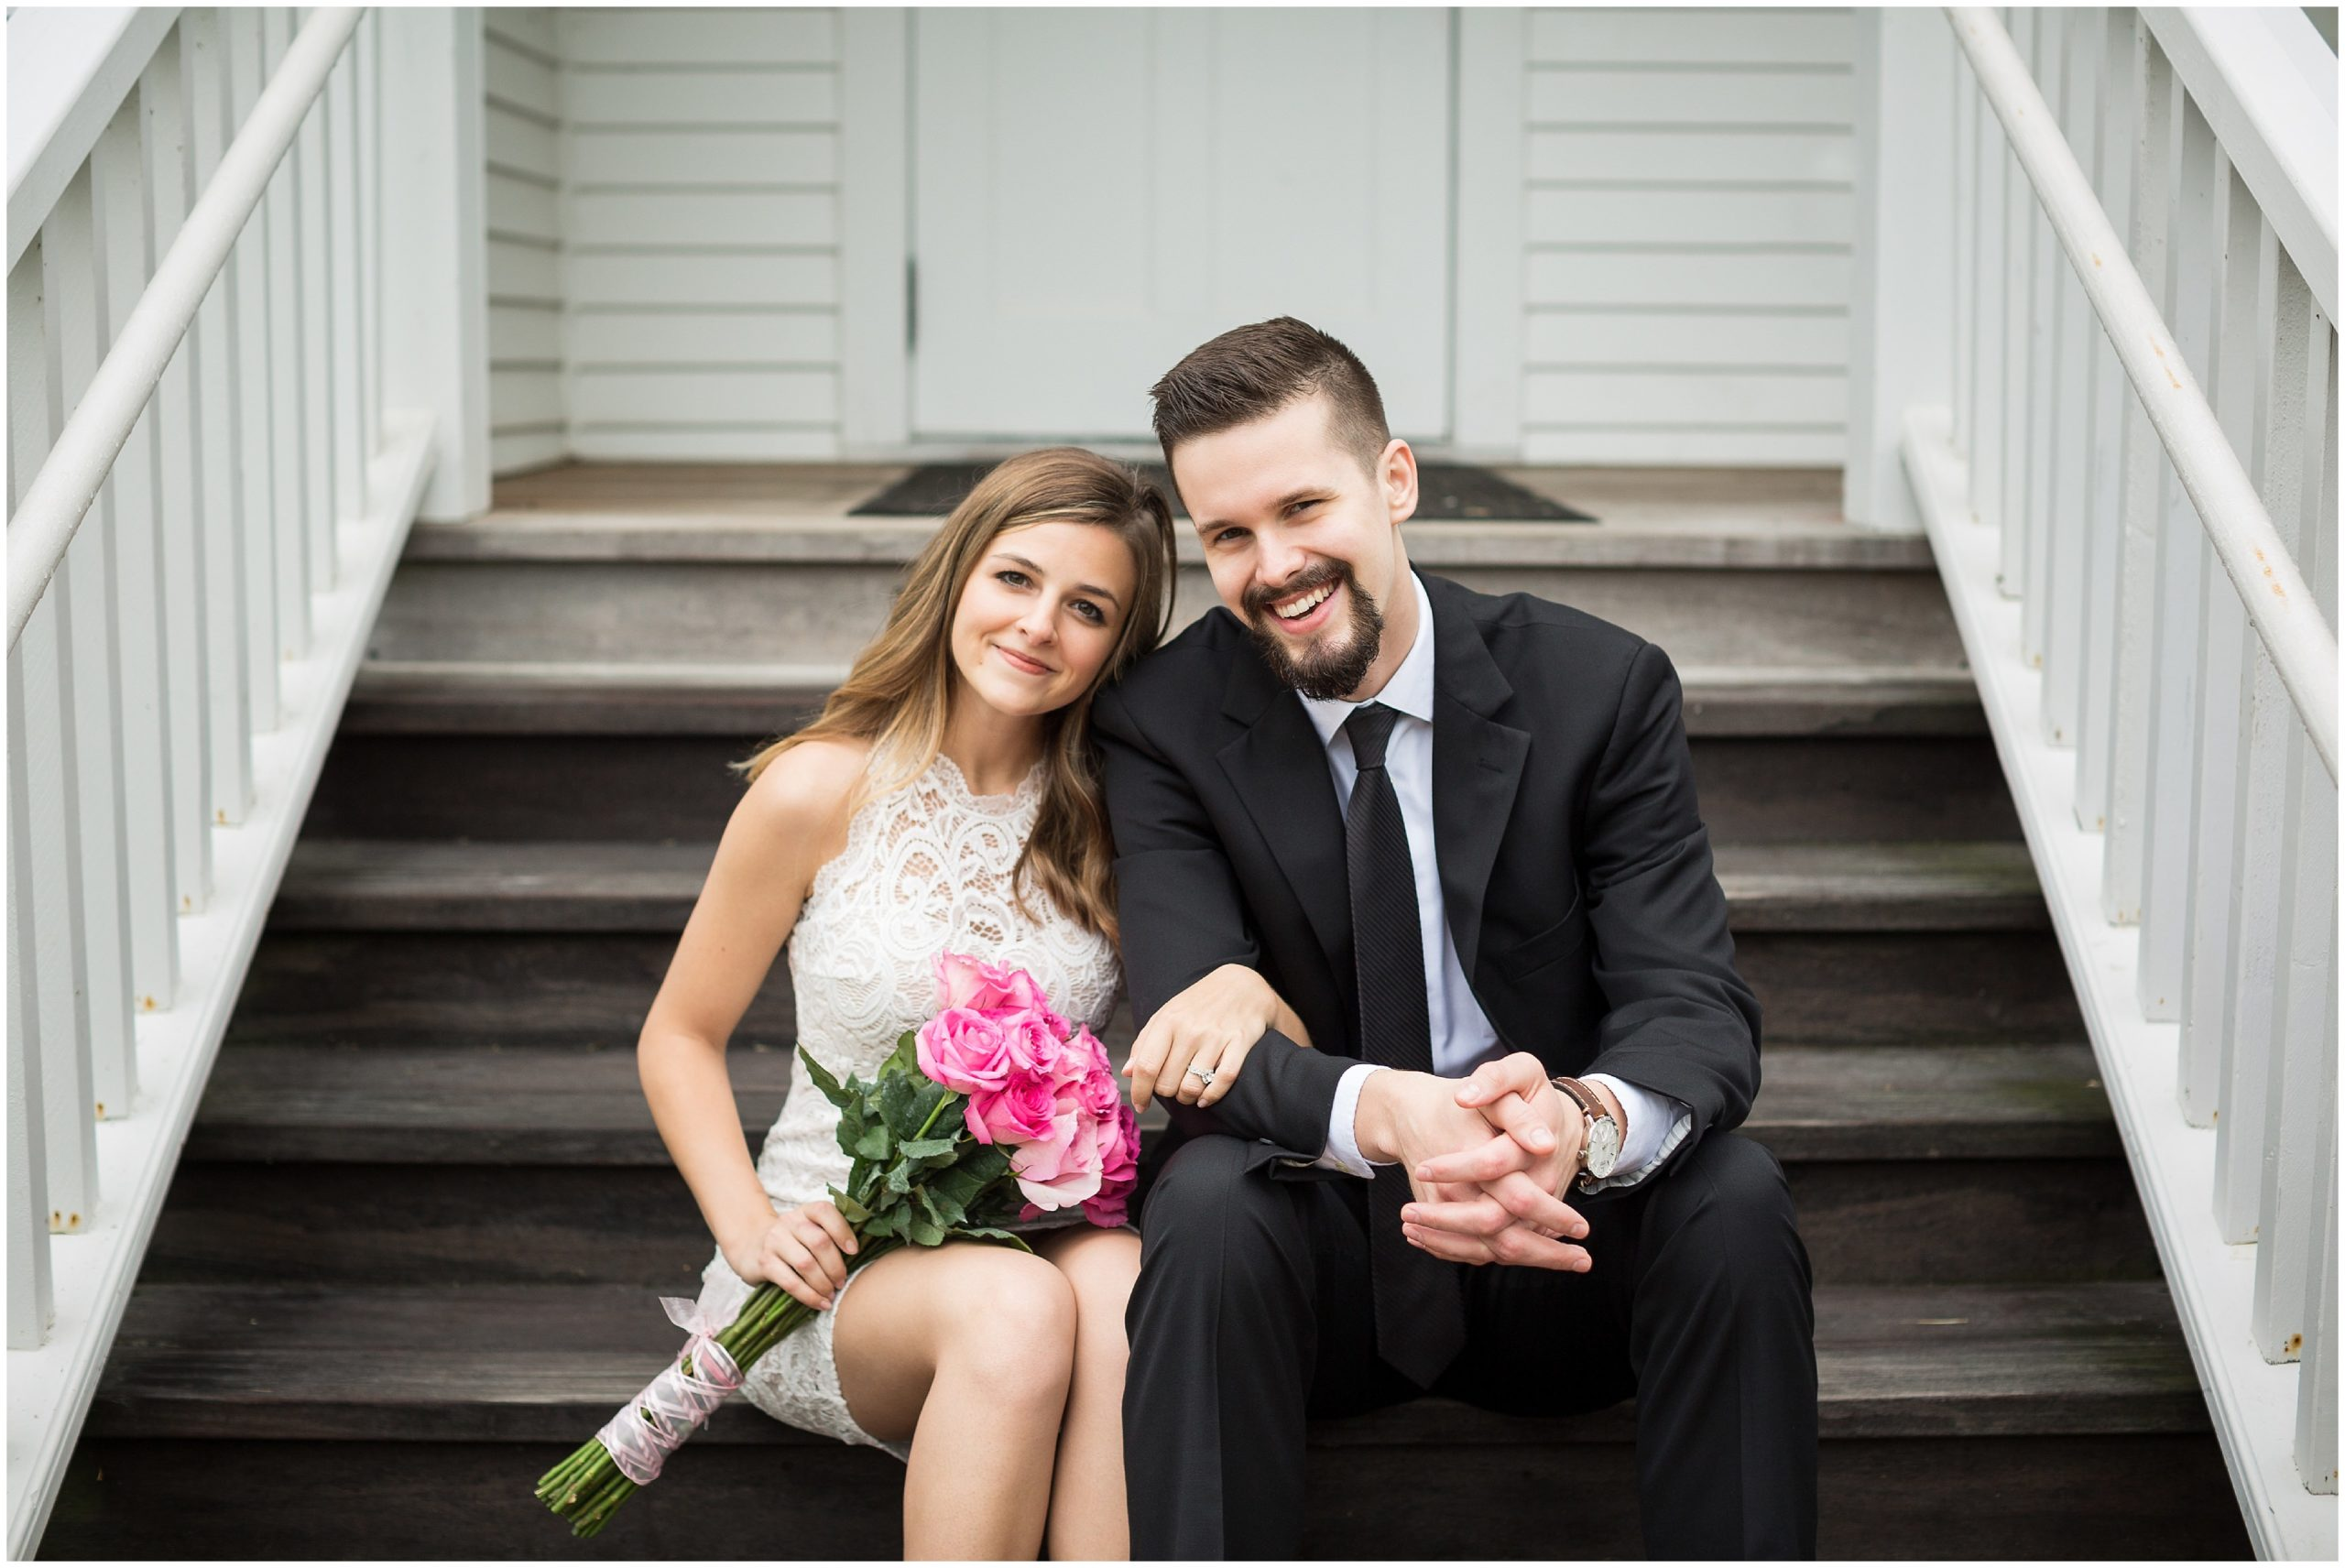 Couple sitting on stairs and smiling